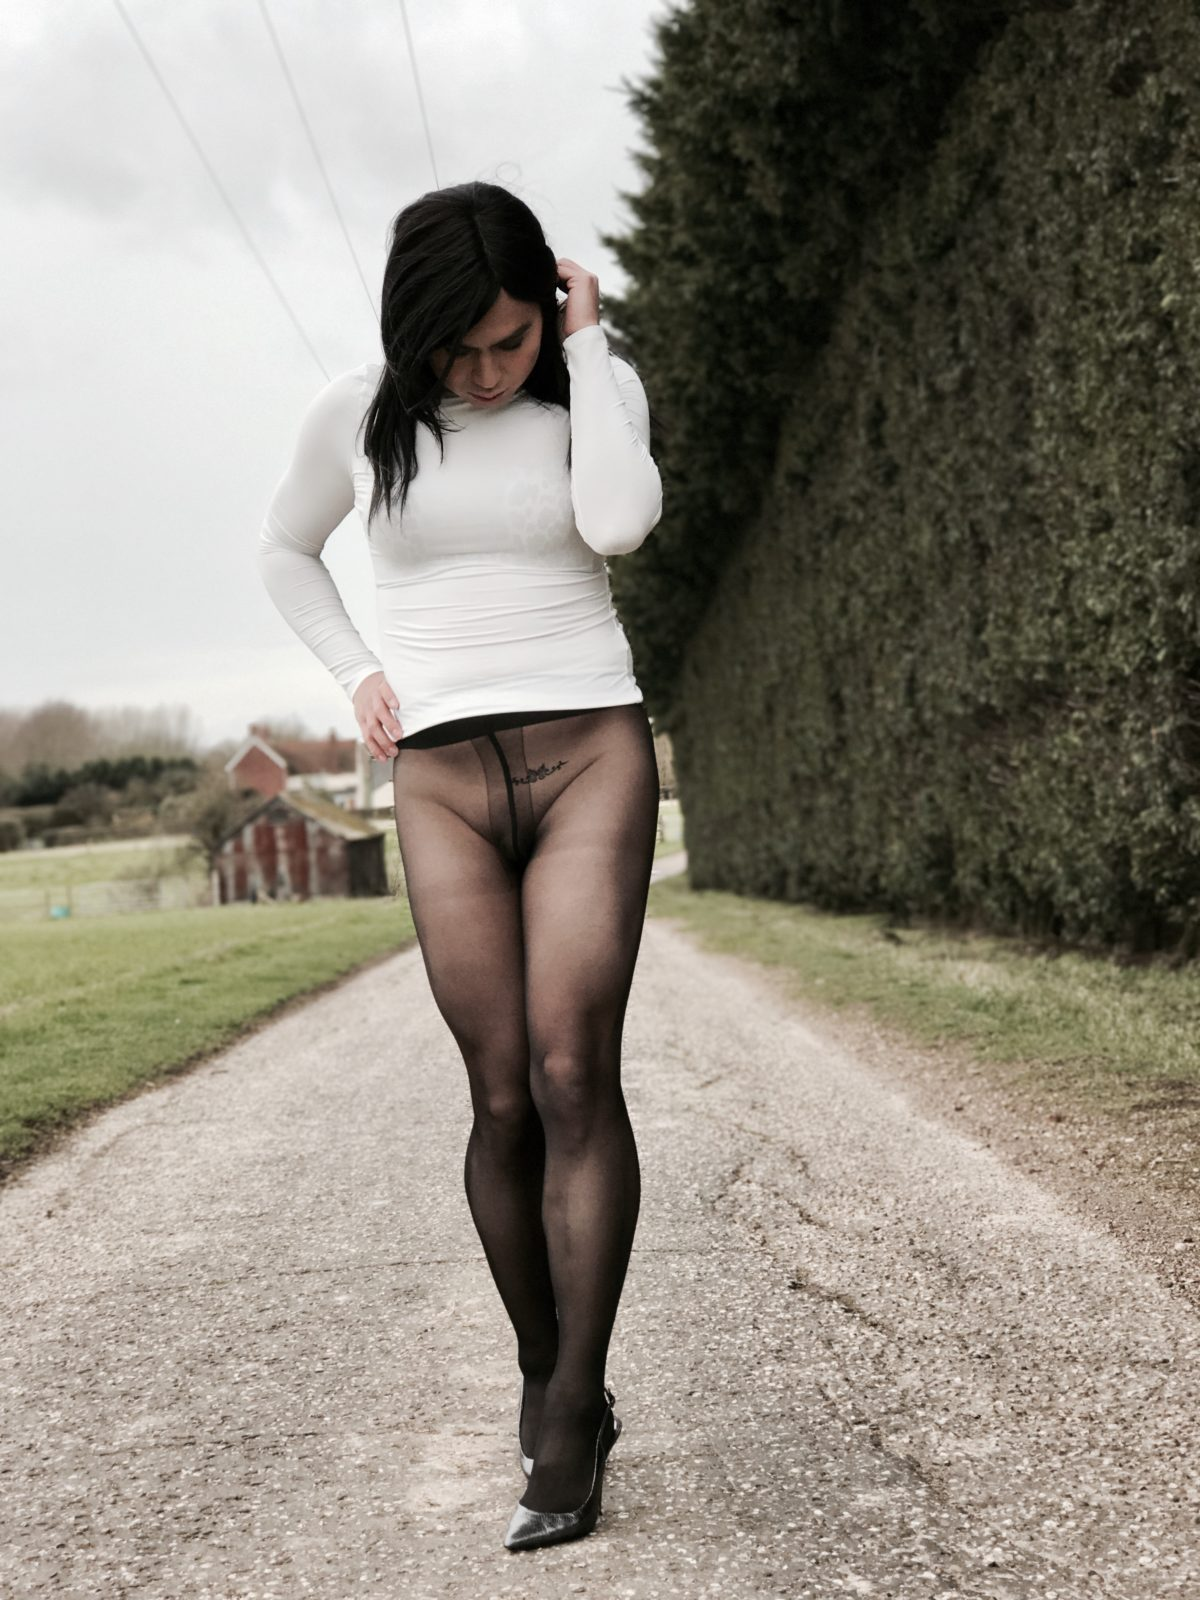 Horny tranny in turtleneck top and black pantyhose masturbating cum